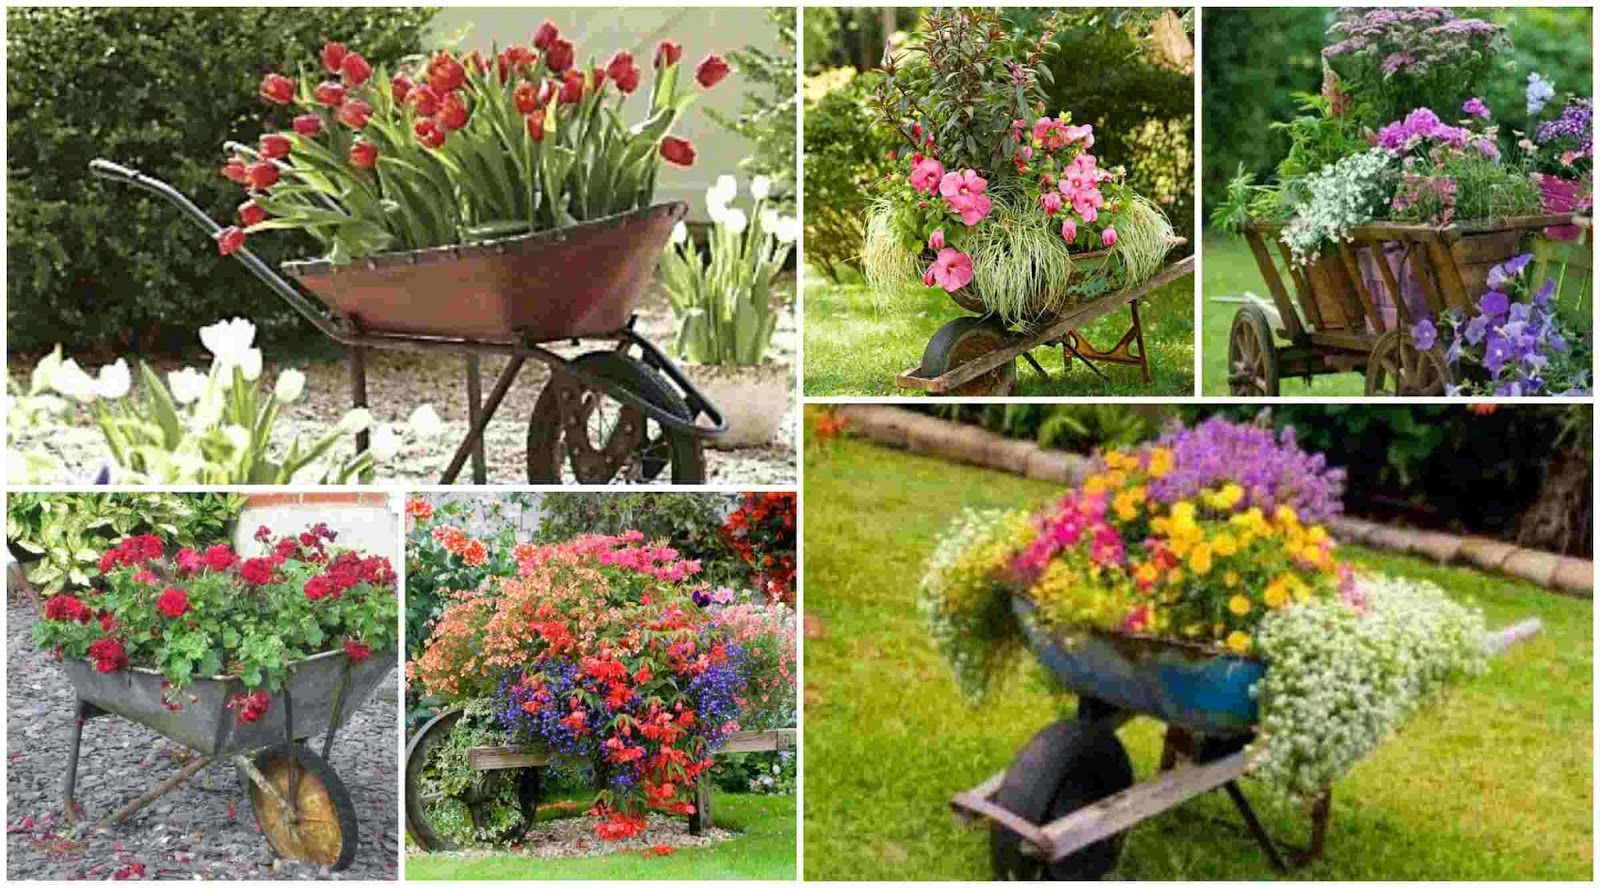 Flower Garden Ideas With Old Wheelbarrow diy fun world: old wheelbarrow as a planter - 15 great ideas